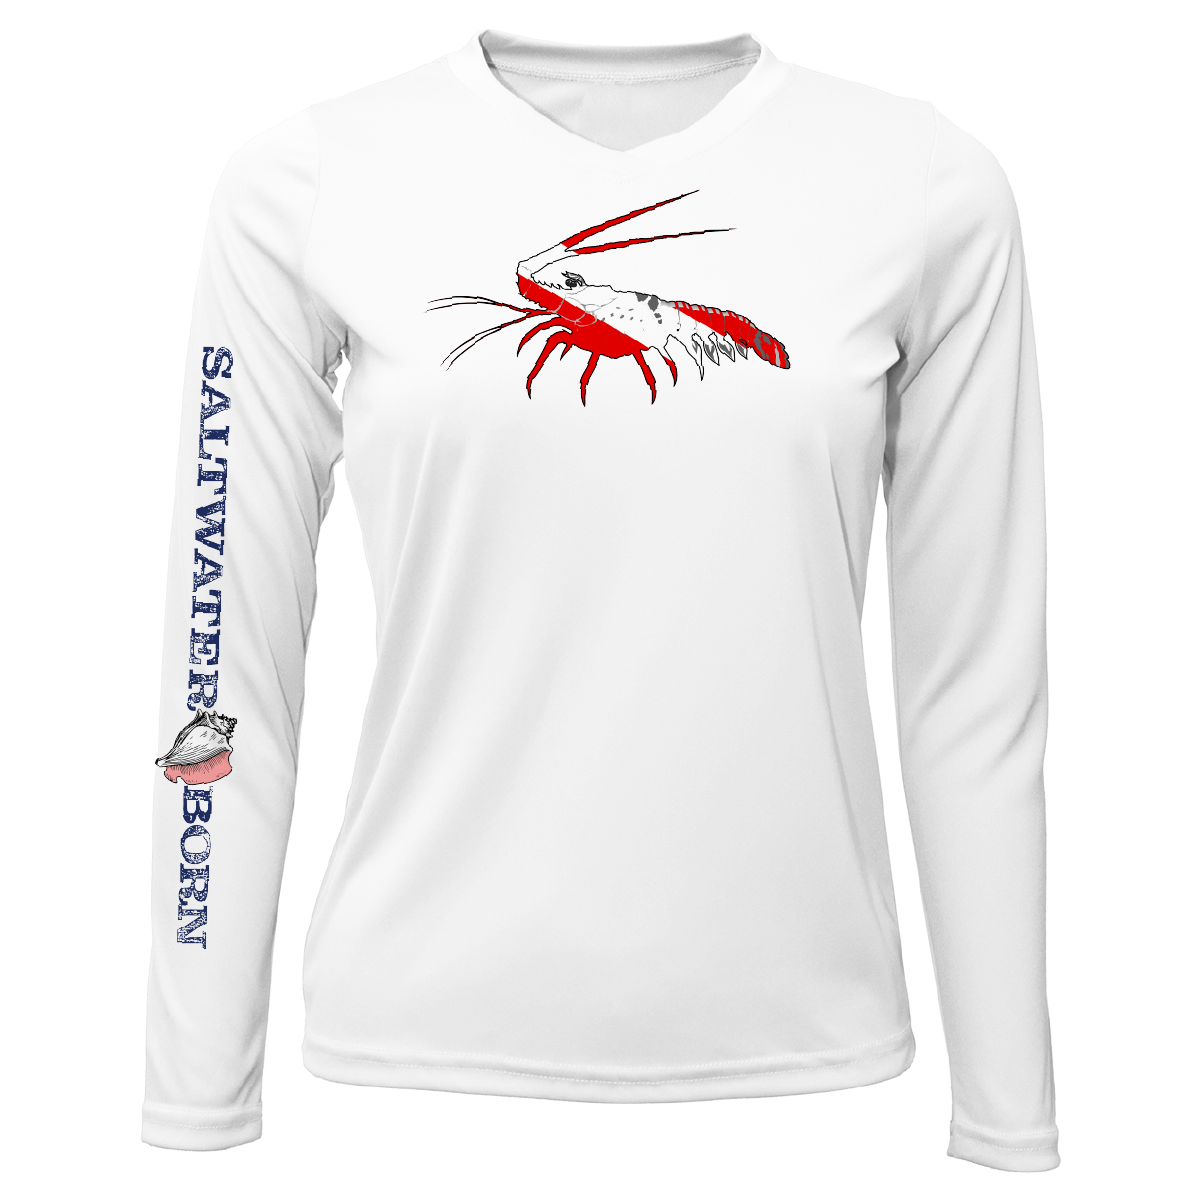 Florida Lobster Long Sleeve UPF 50+ Dry-Fit Shirt